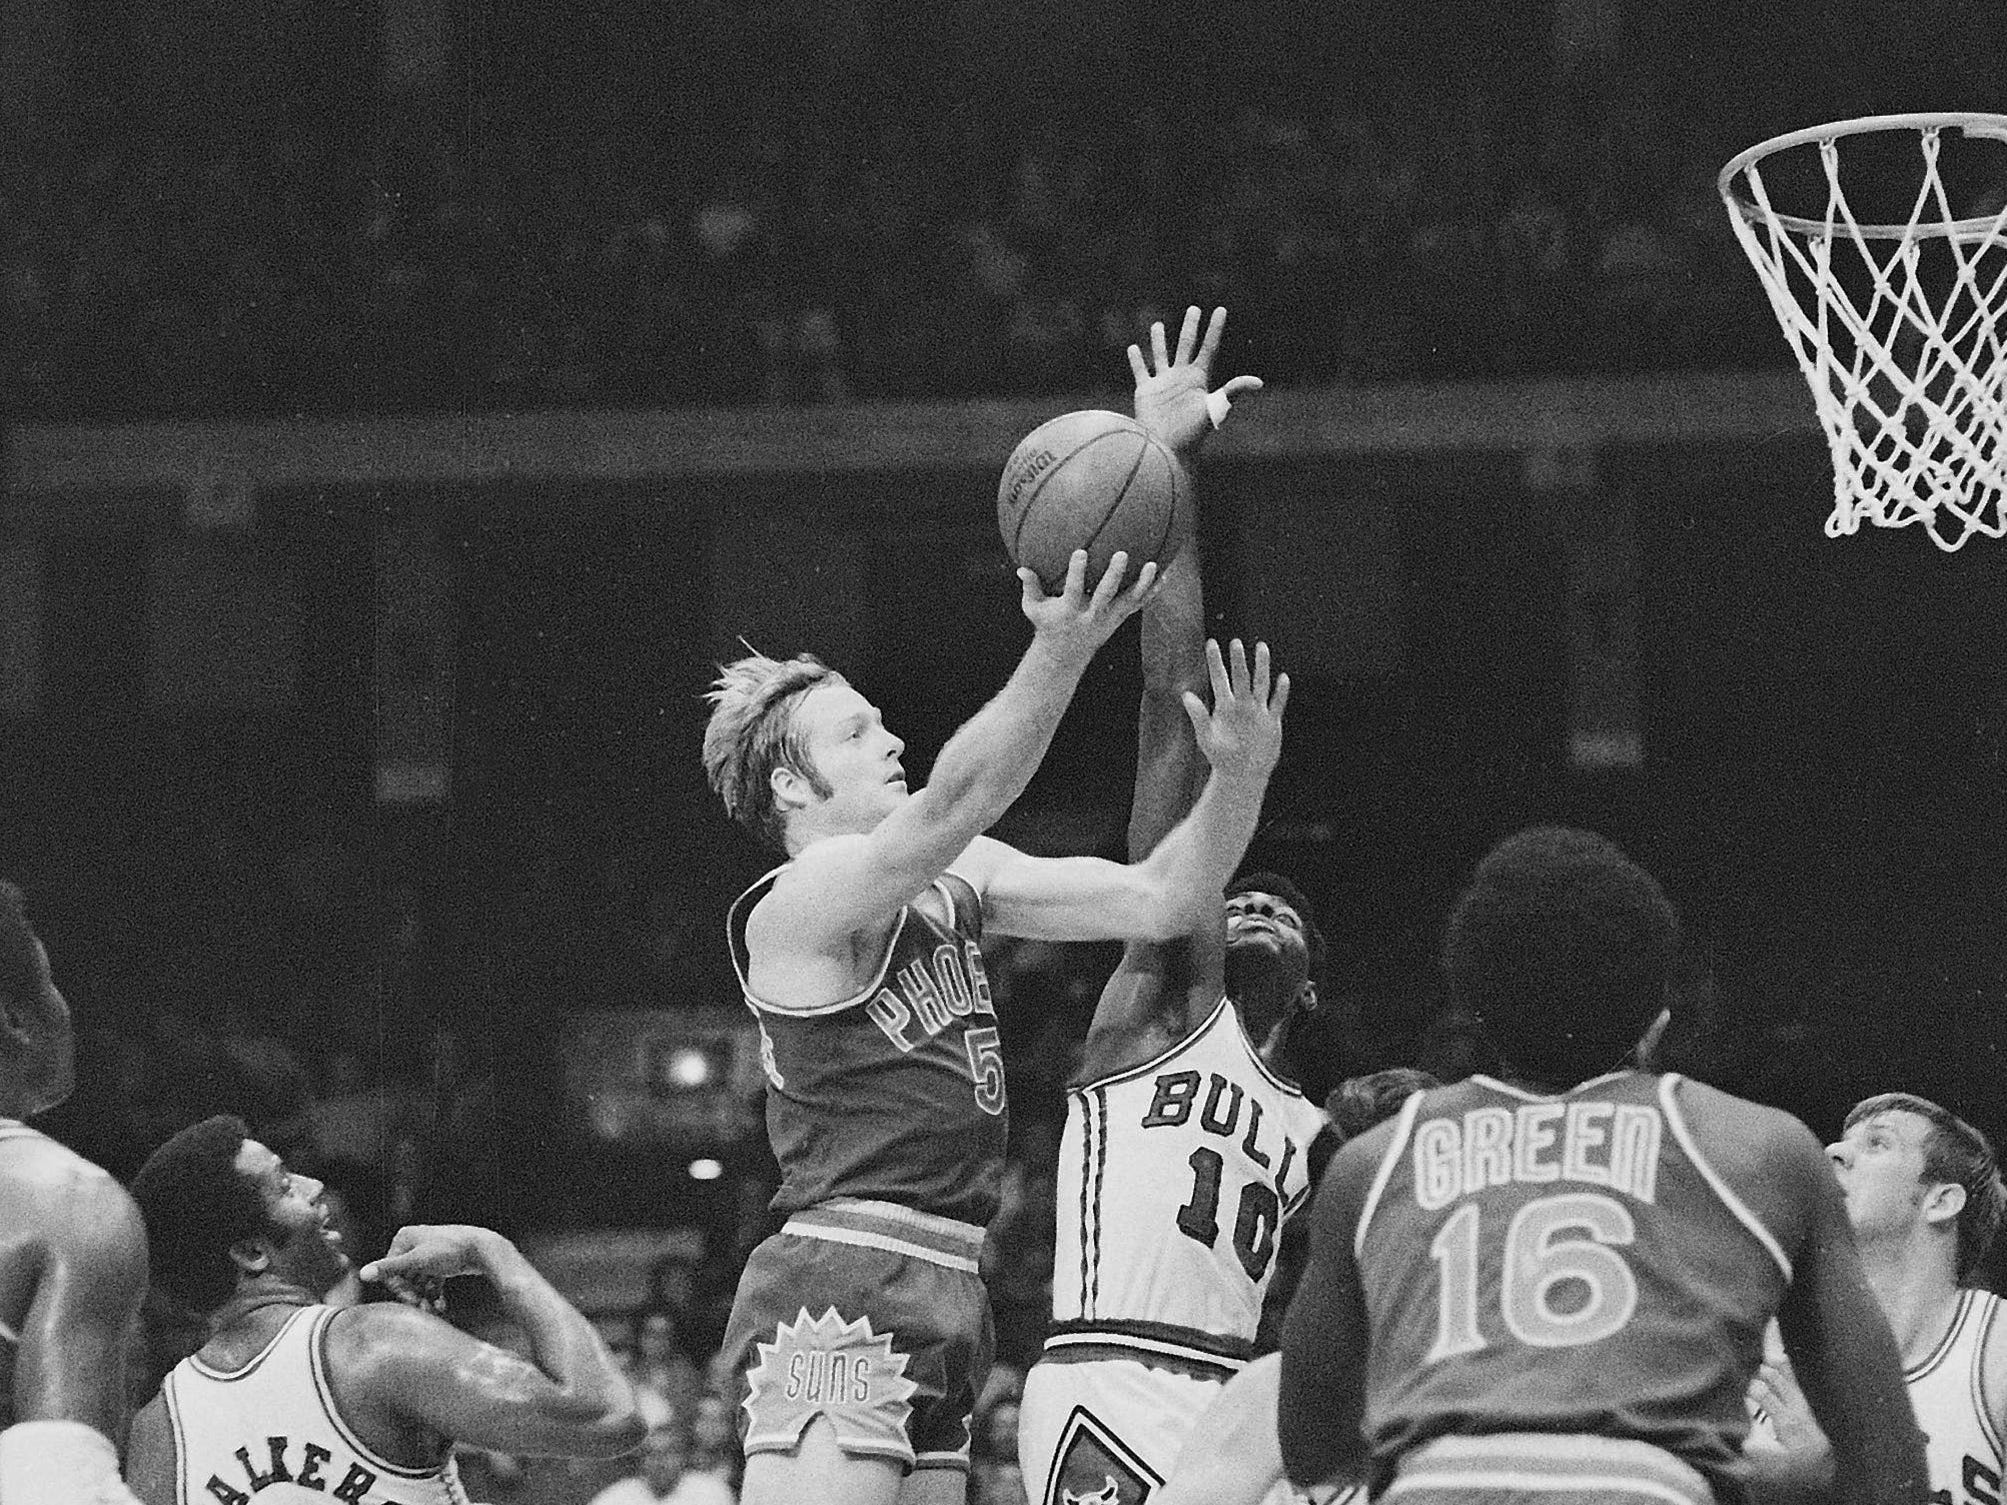 1970-71 | Suns MVP: Dick Van Arsdale. Van Arsdale turns in the last of three straight years in which he averaged more than 20 points per game and was selected as an All Star. The Original Sun gets the nod over Paul Silas, a superb rebounder who was second team All Defense.